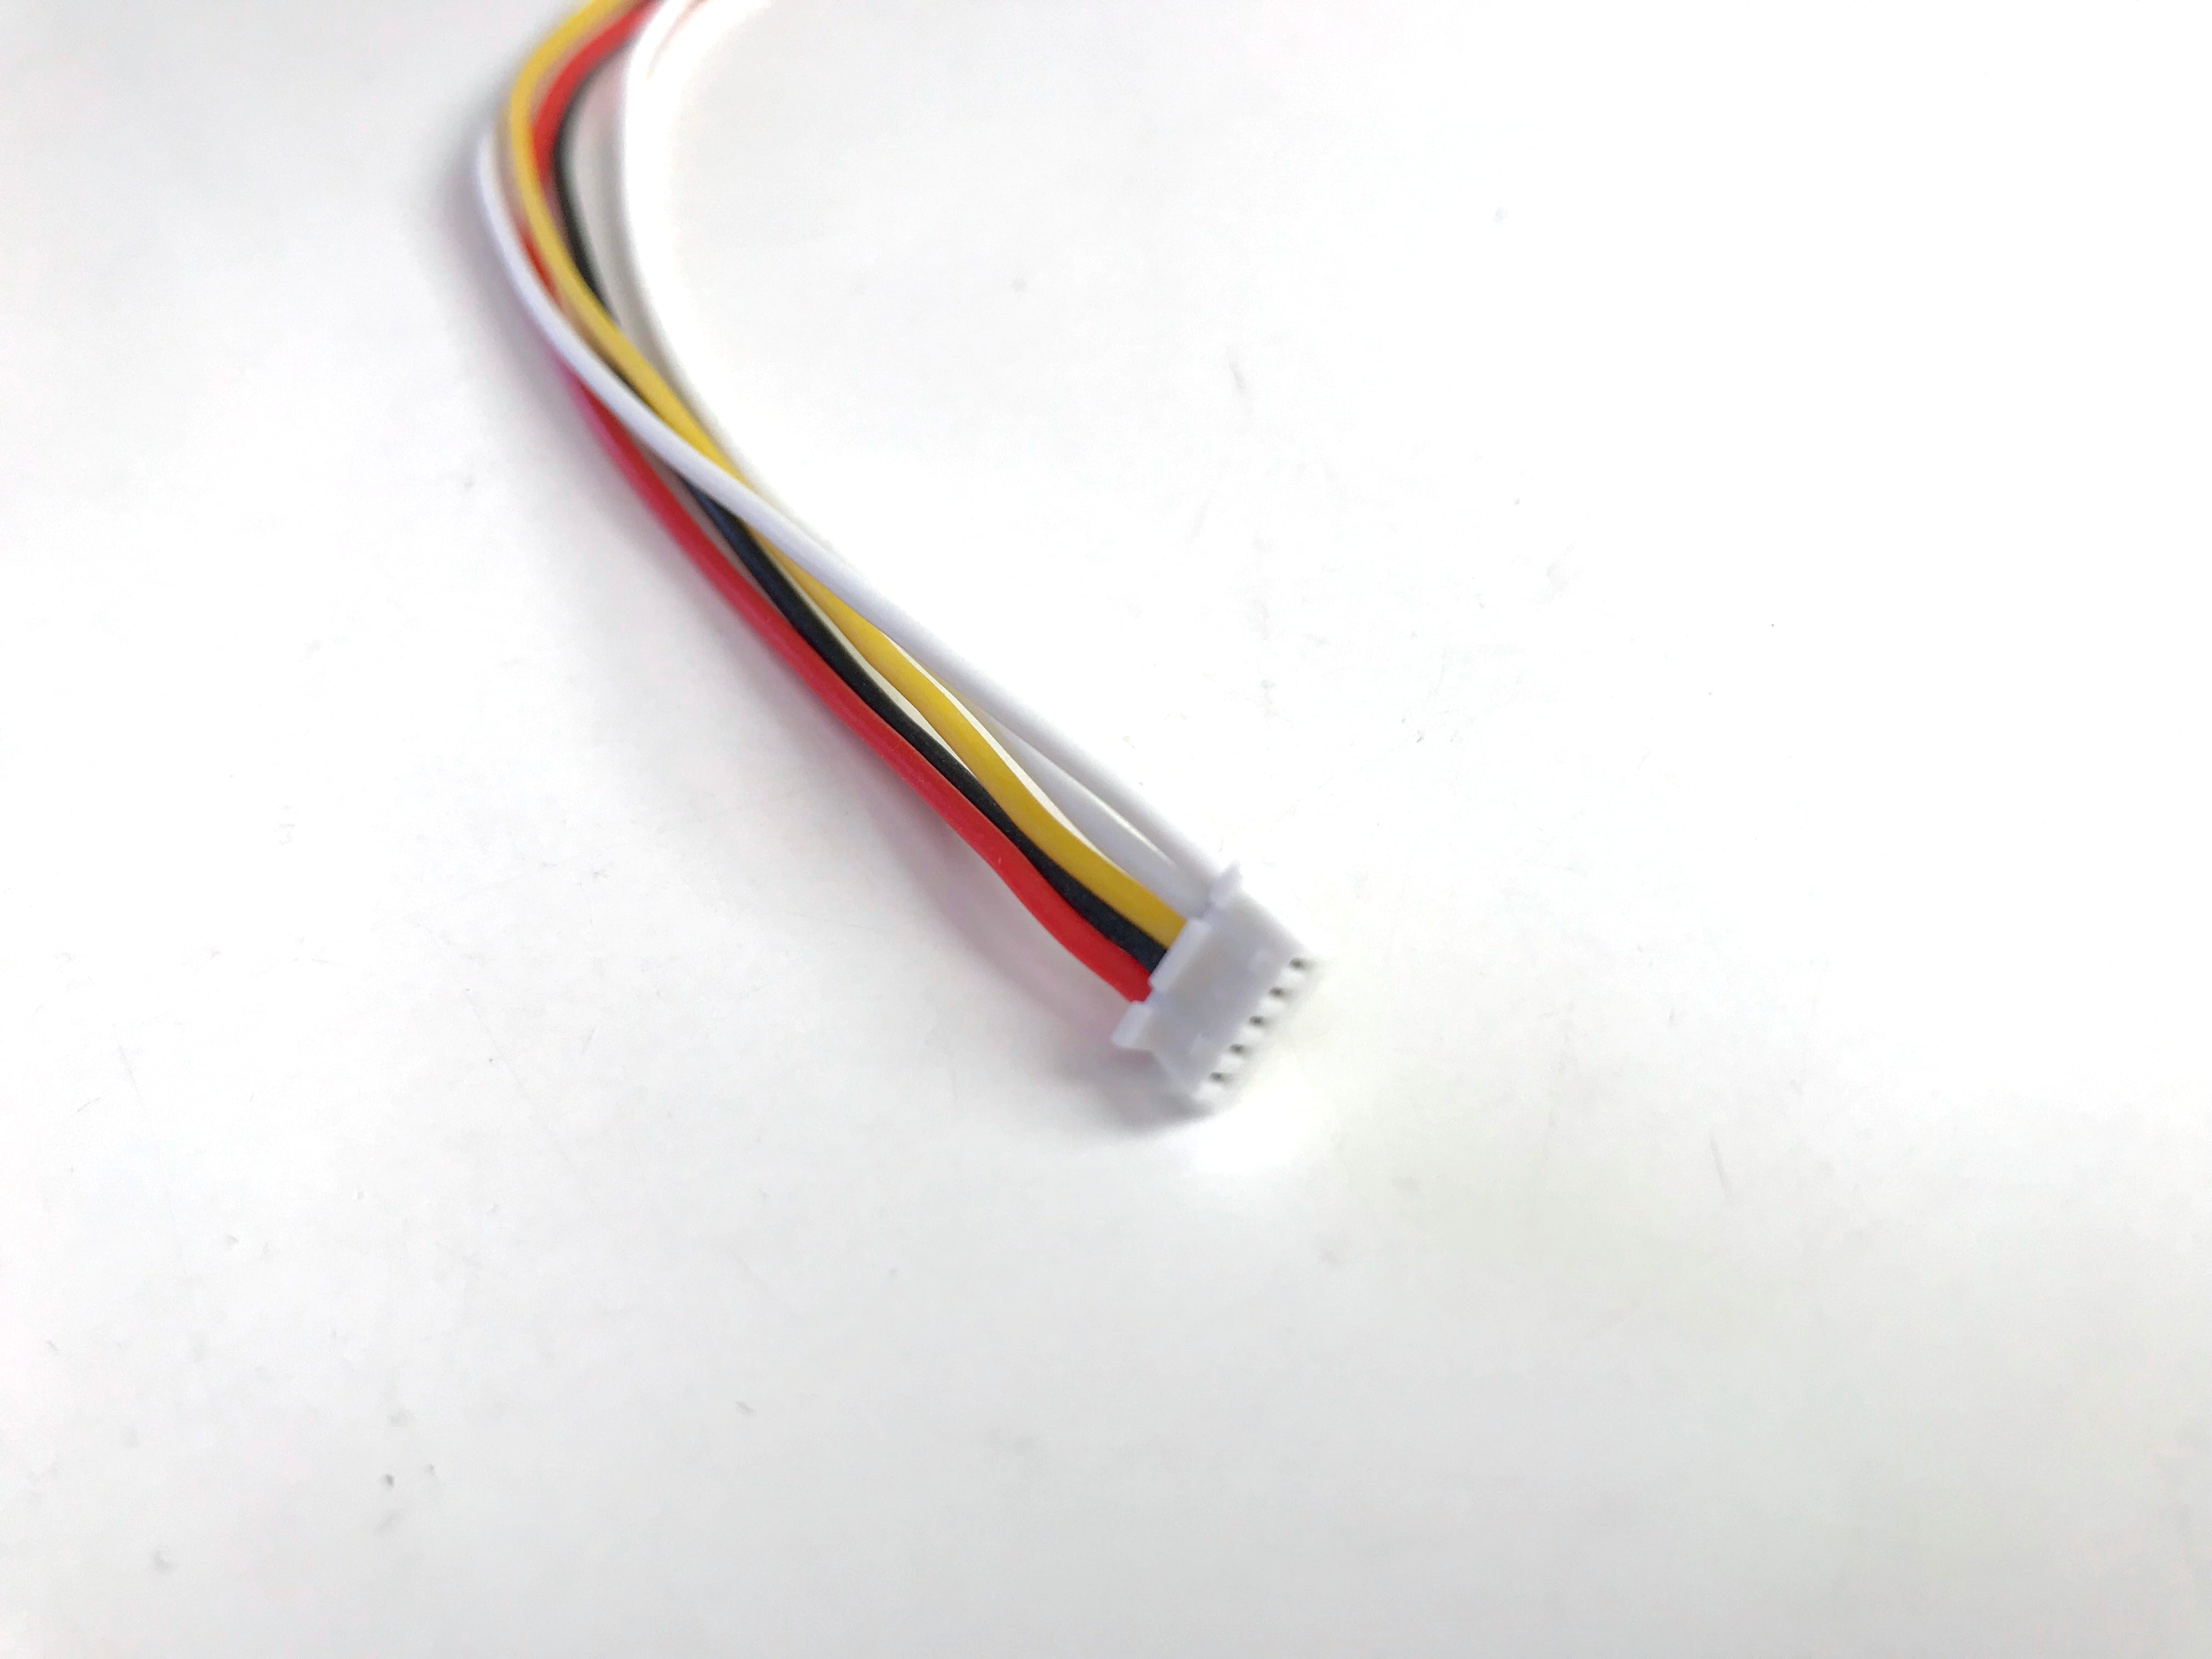 Micro Jst Plug 5 Pin 125mm With Silicon Wire Harness Set 5p Wiring Plugs